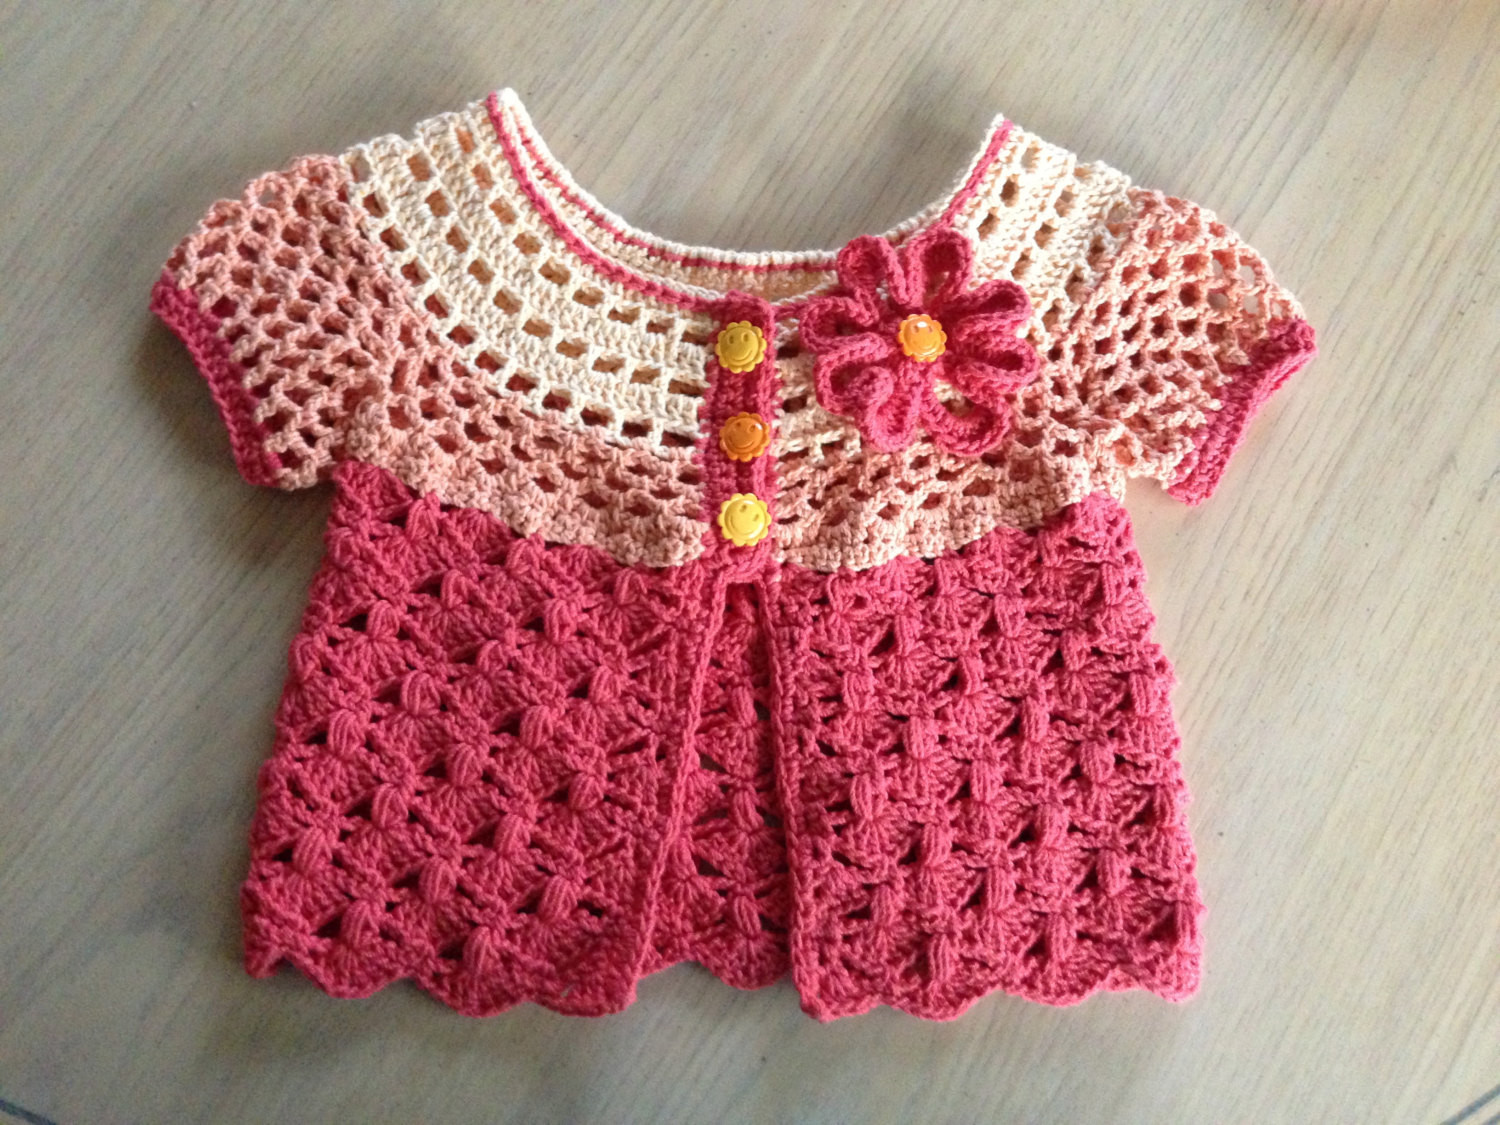 Crochet Baby Sweater Awesome Crochet Pattern for Baby Cardigan Sweater Sunburst Cardigan Of Charming 44 Images Crochet Baby Sweater